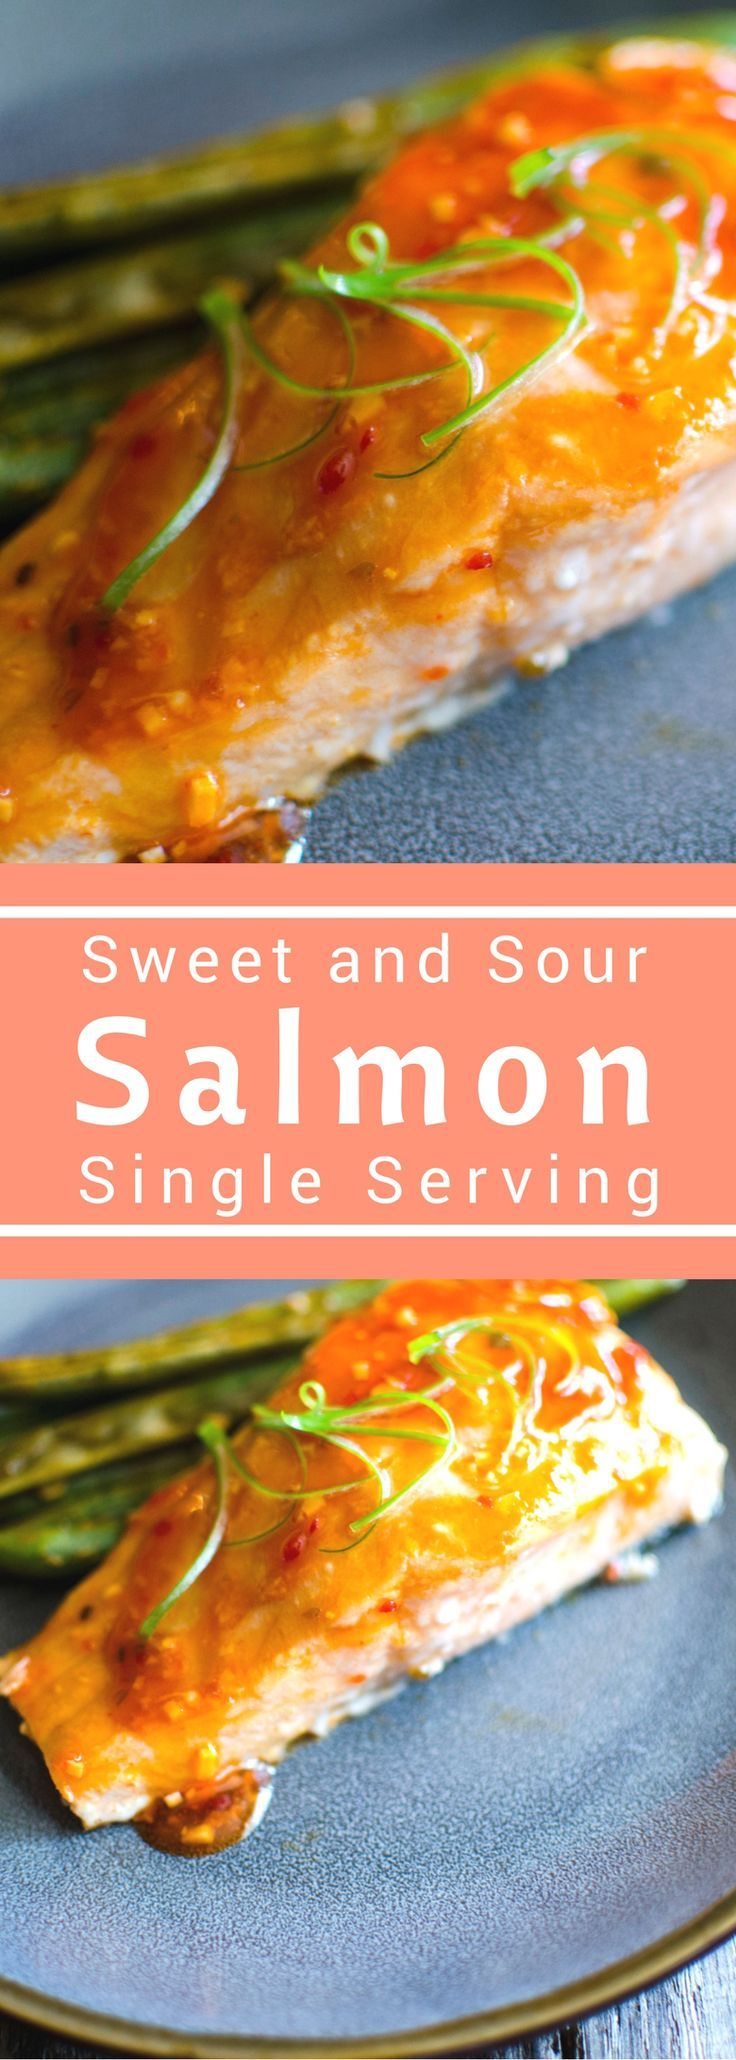 Sweet and Sour Salmon for #SundaySupper this easy recipe is packed with flavor. Dinner for one doesn't have to be boring! With a sweet and tangy glaze and some crunchy green beans this one pan dinner has it all!